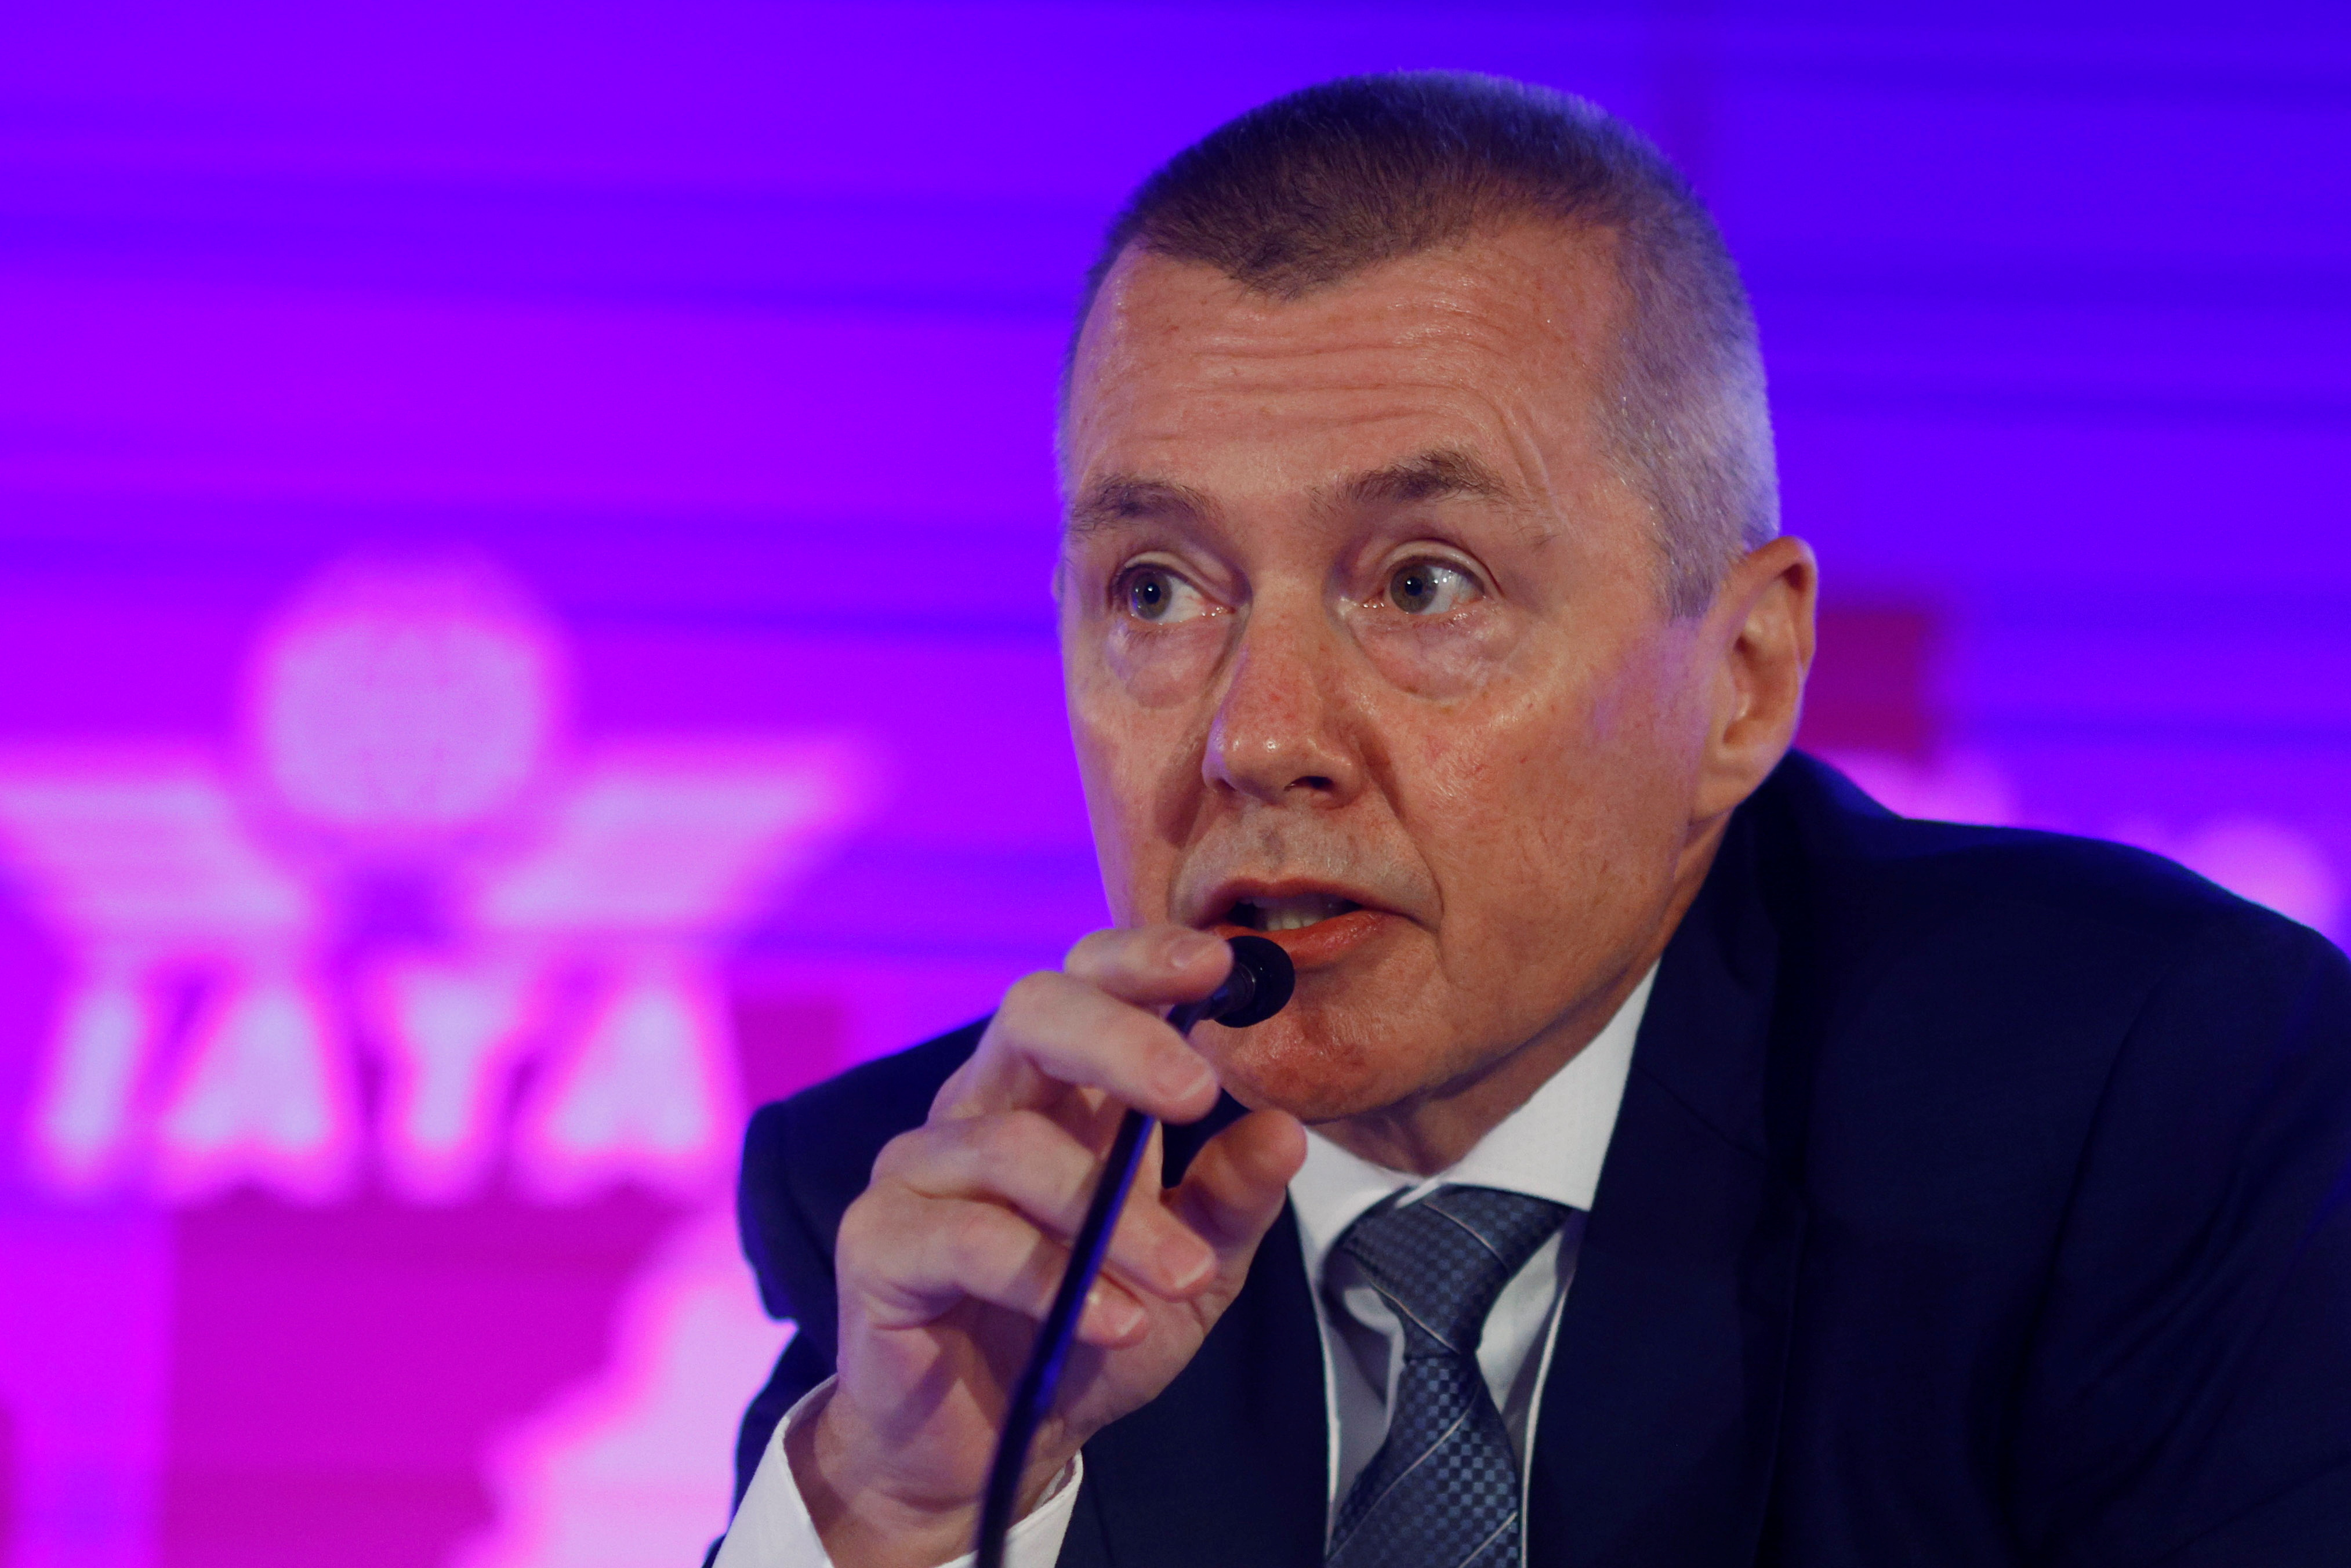 Willie Walsh, director general of the International Air Transport Association, speaks at the IATA's Annual General Meeting in Boston, Massachusetts, U.S., October 4, 2021.   REUTERS/Brian Snyder